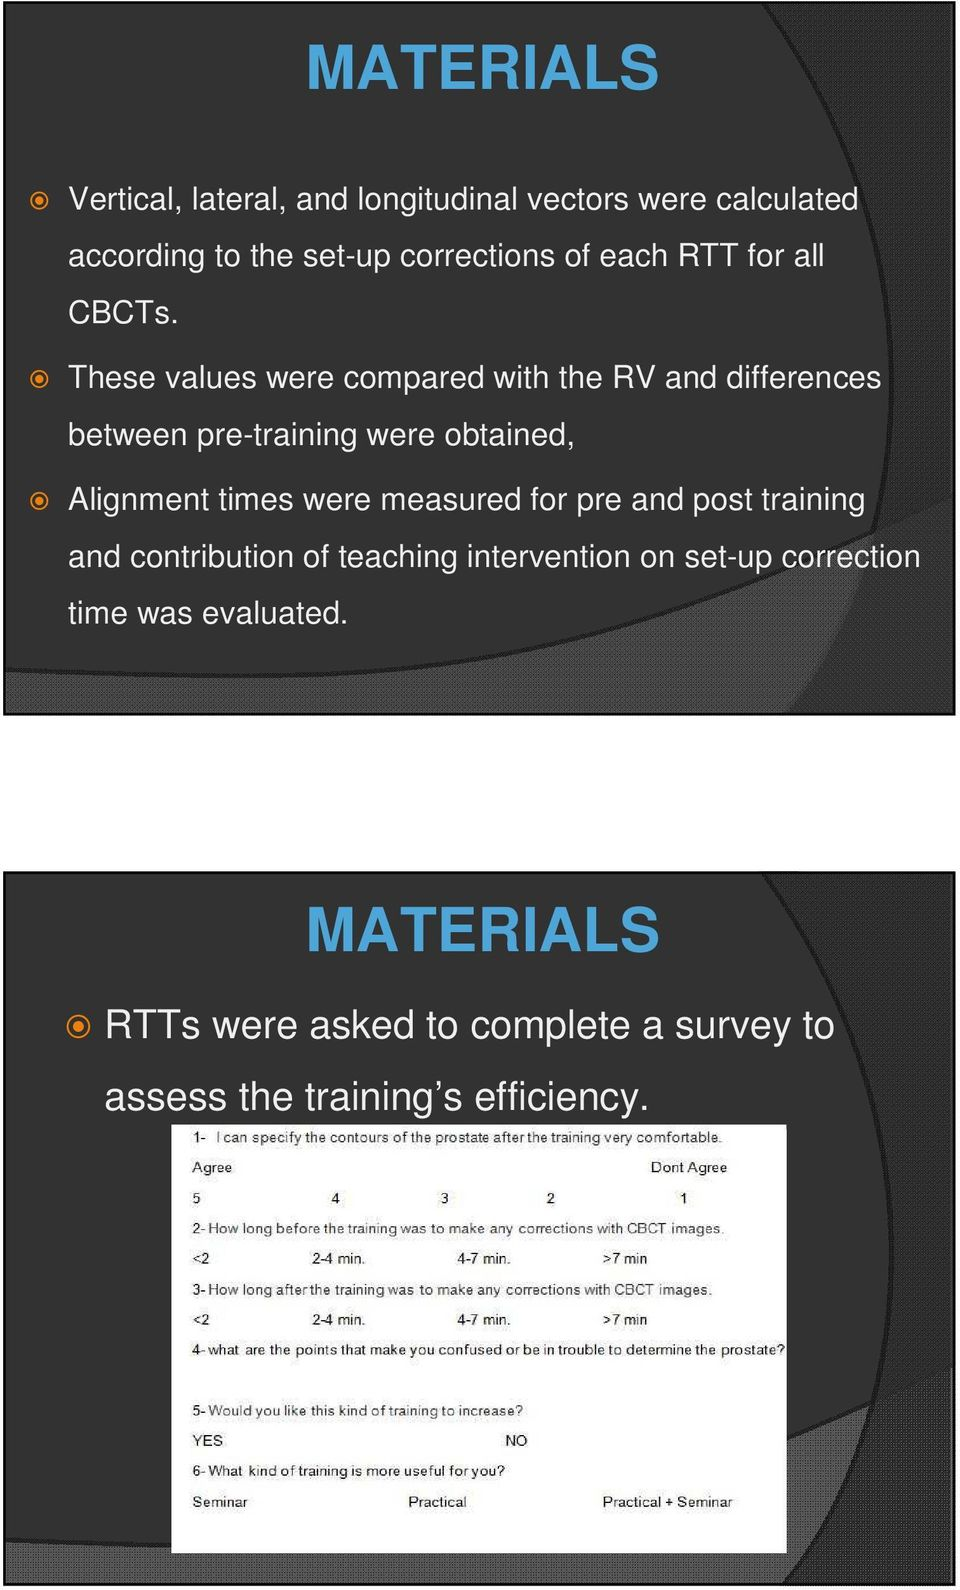 These values were compared with the RV and differences between pre-training were obtained, Alignment times were